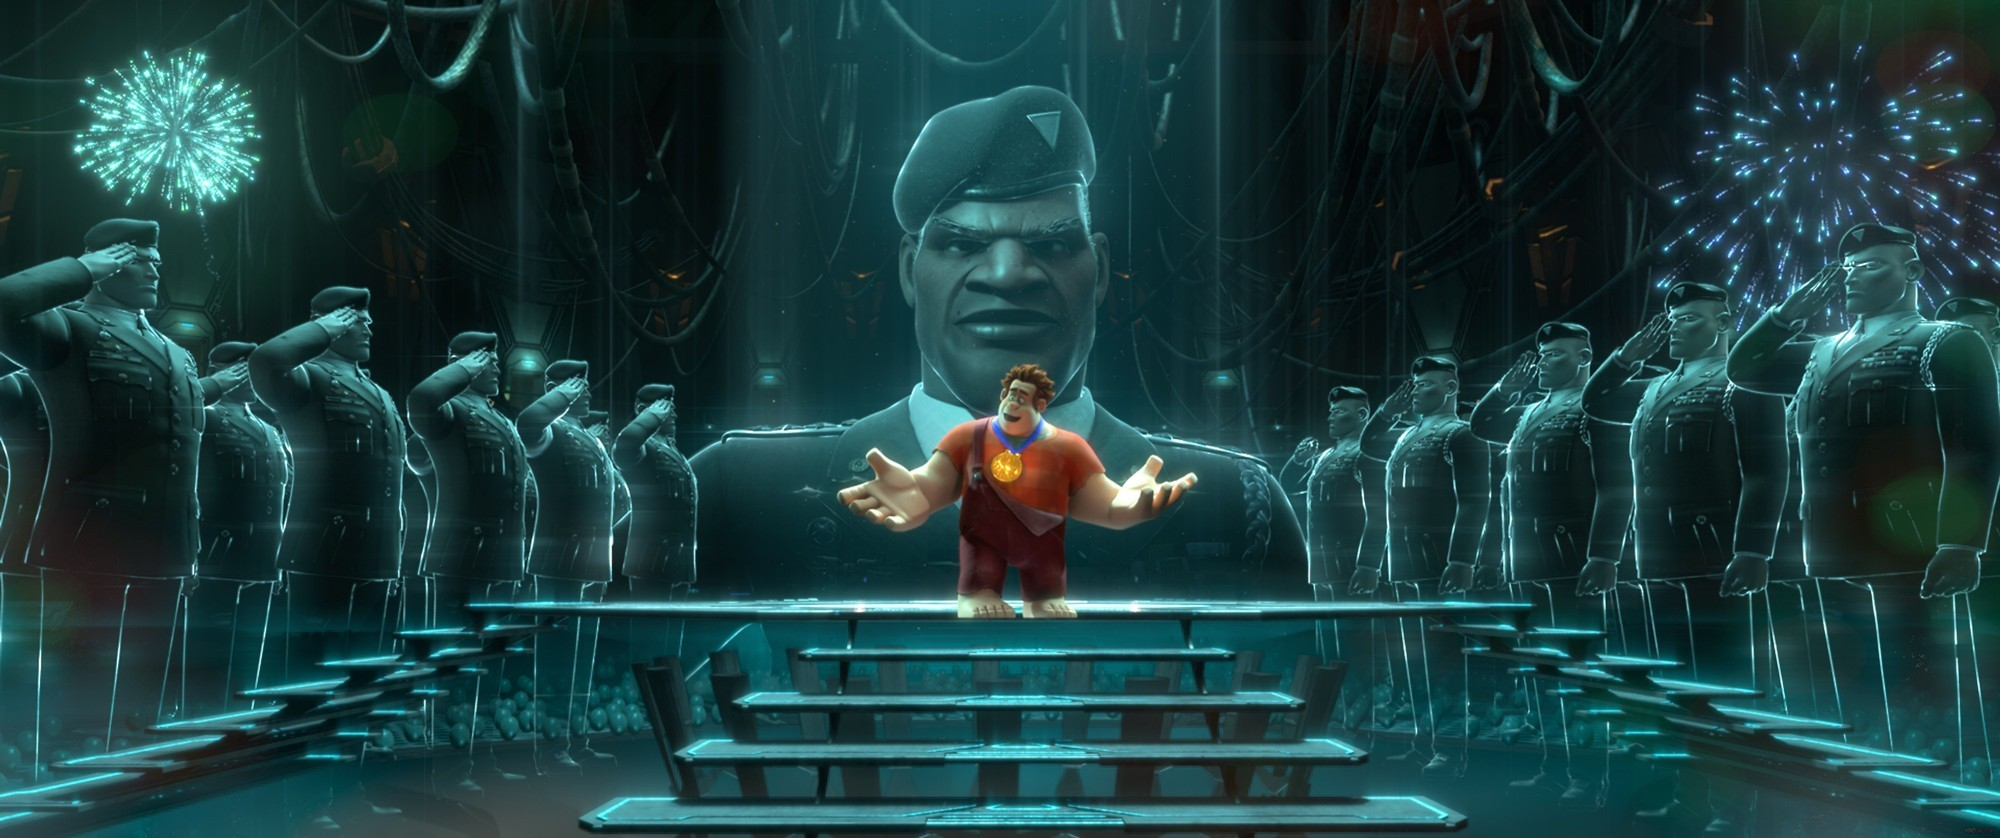 https://i1.wp.com/www.aceshowbiz.com/images/still/wreck-it-ralph-image01.jpg